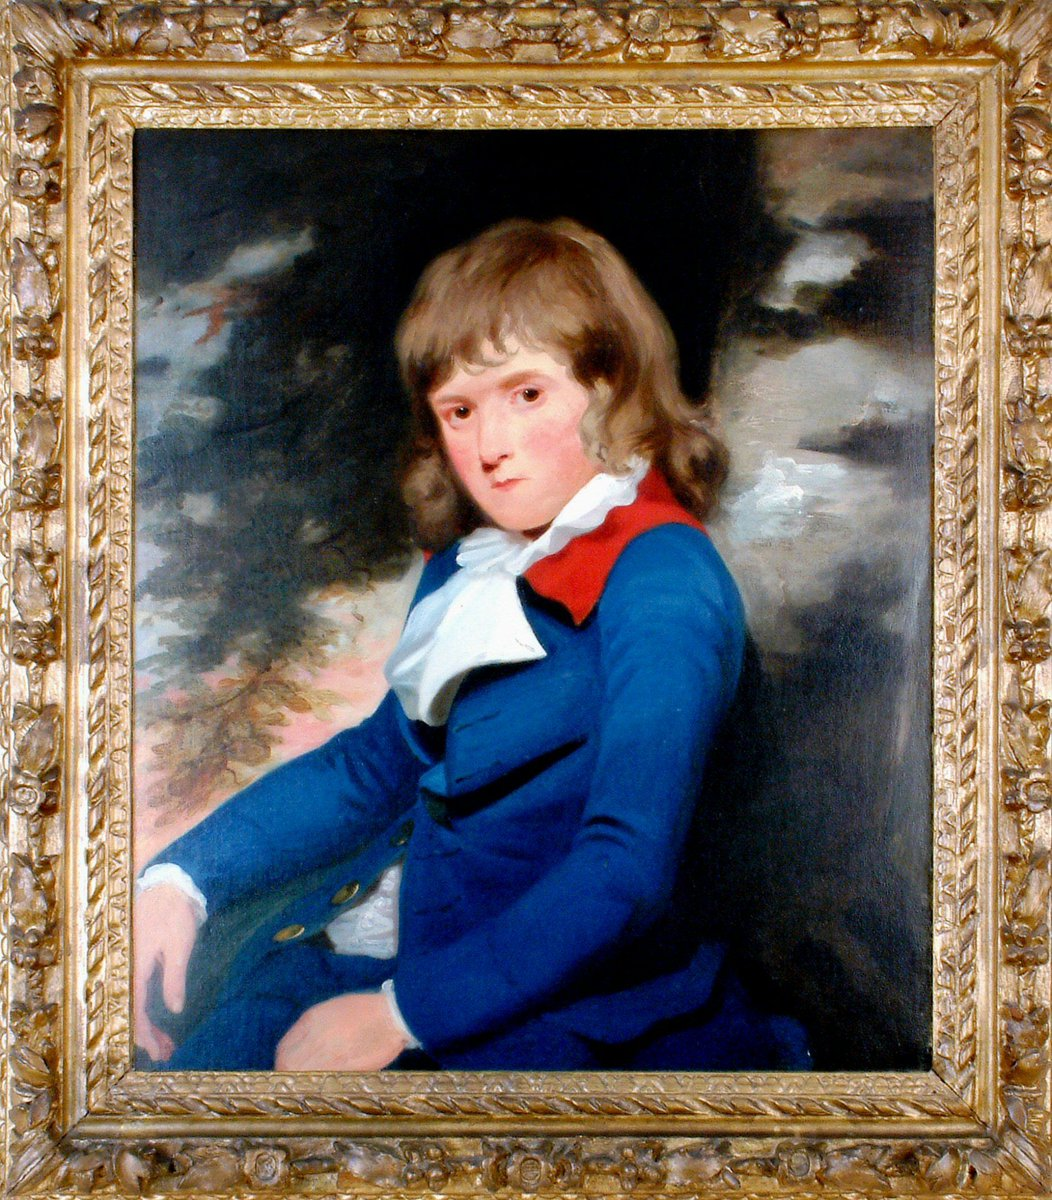 Edward Austen Knight, Jane Austens rich brother and once owner of this house, was born #OnThisDay in 1768. He gave this house to his mother and sisters to live in, and this portrait of him as a boy is held in our collection. #AustenTreasures